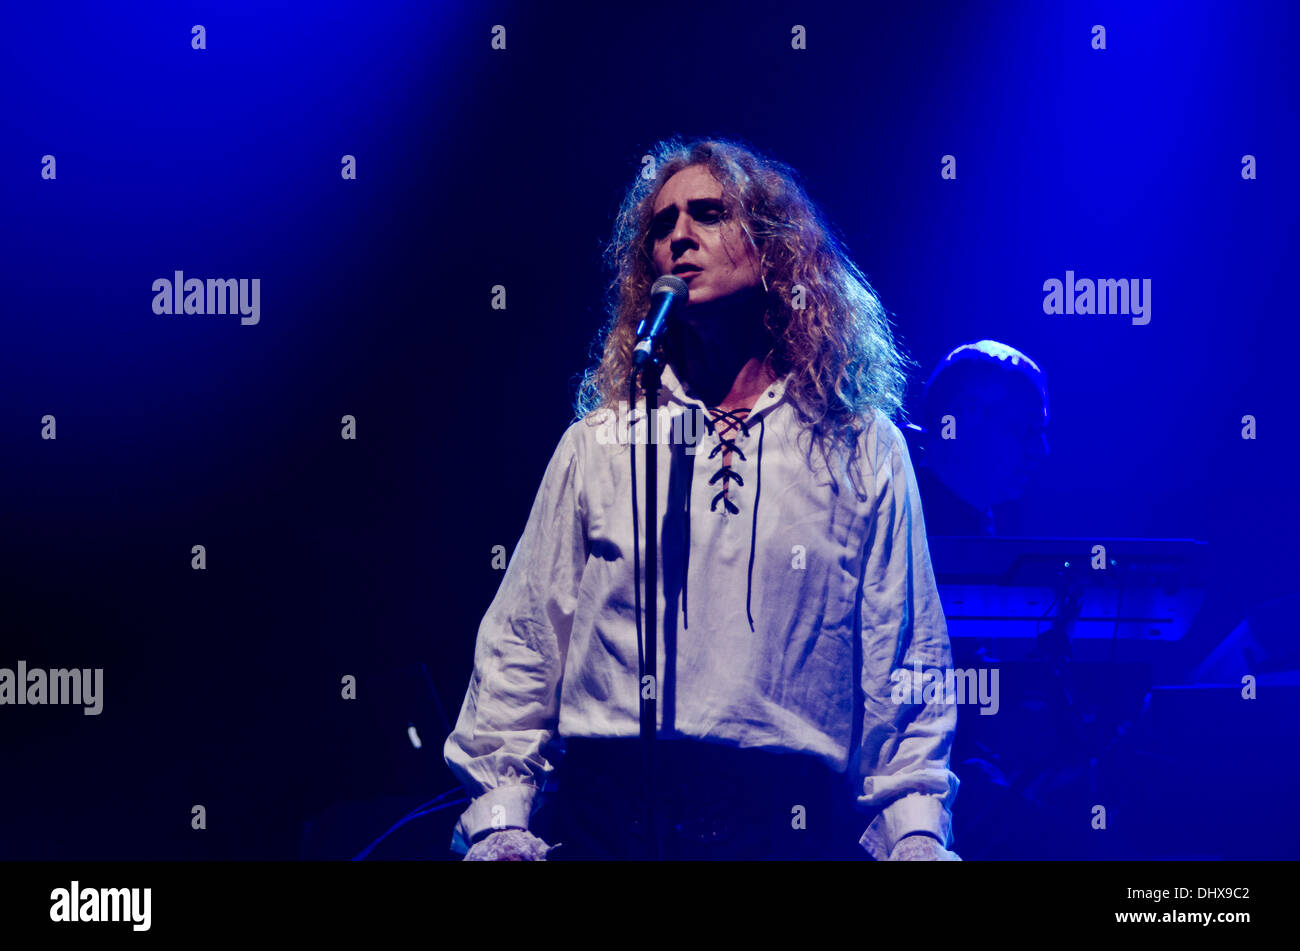 Nad Sylvan playing with Steve Hackett during the Genesis Revisited tour at Liverpool Philharmonic in England - Stock Image